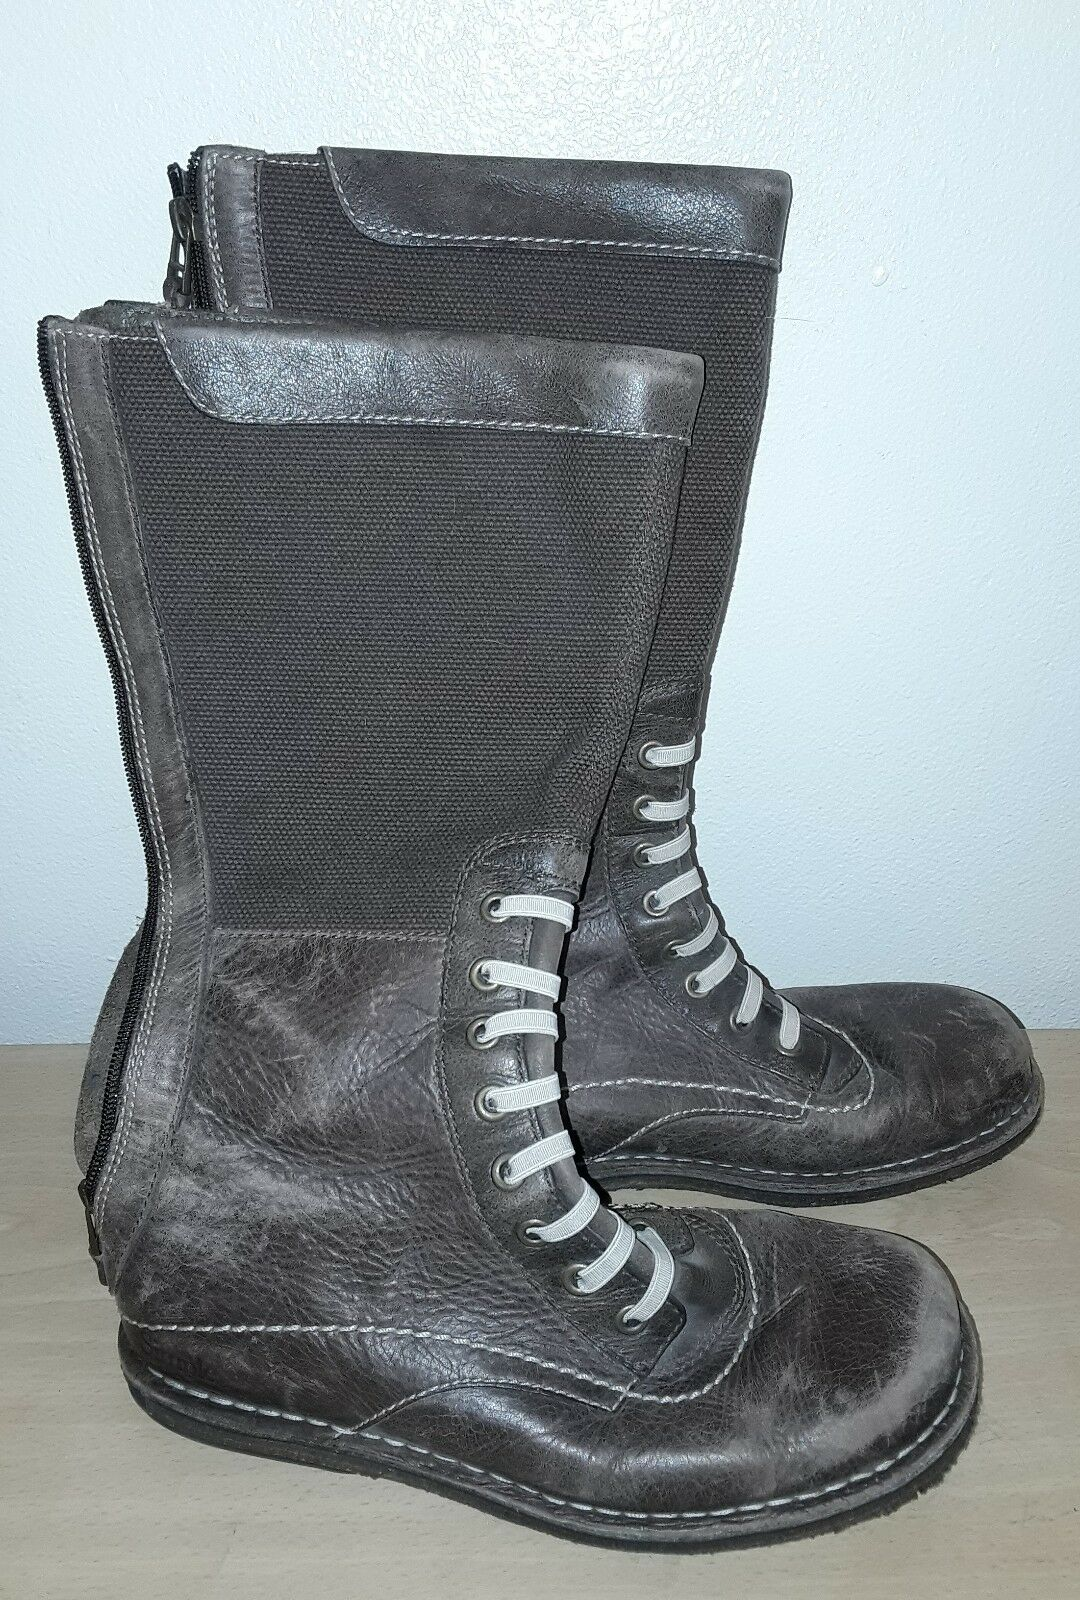 Simple Brand Women's Brown Color Leather Zip-up Boots - Sz: 8.5